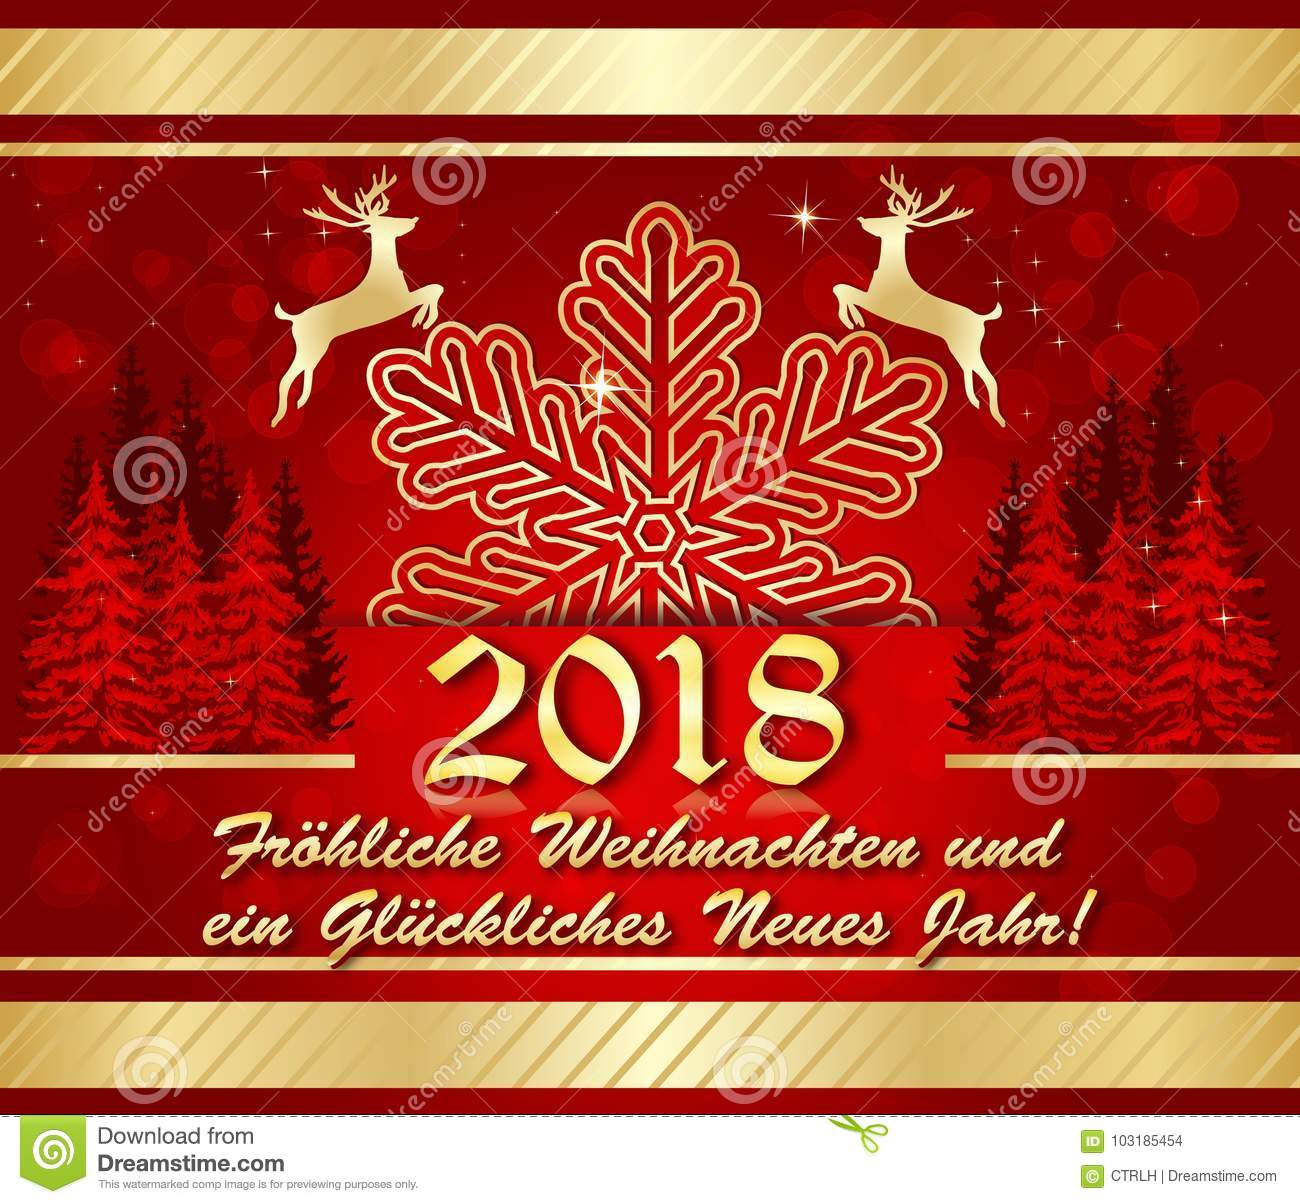 Corporate Greeting Card For The Holiday Season 2018 Stock Photo